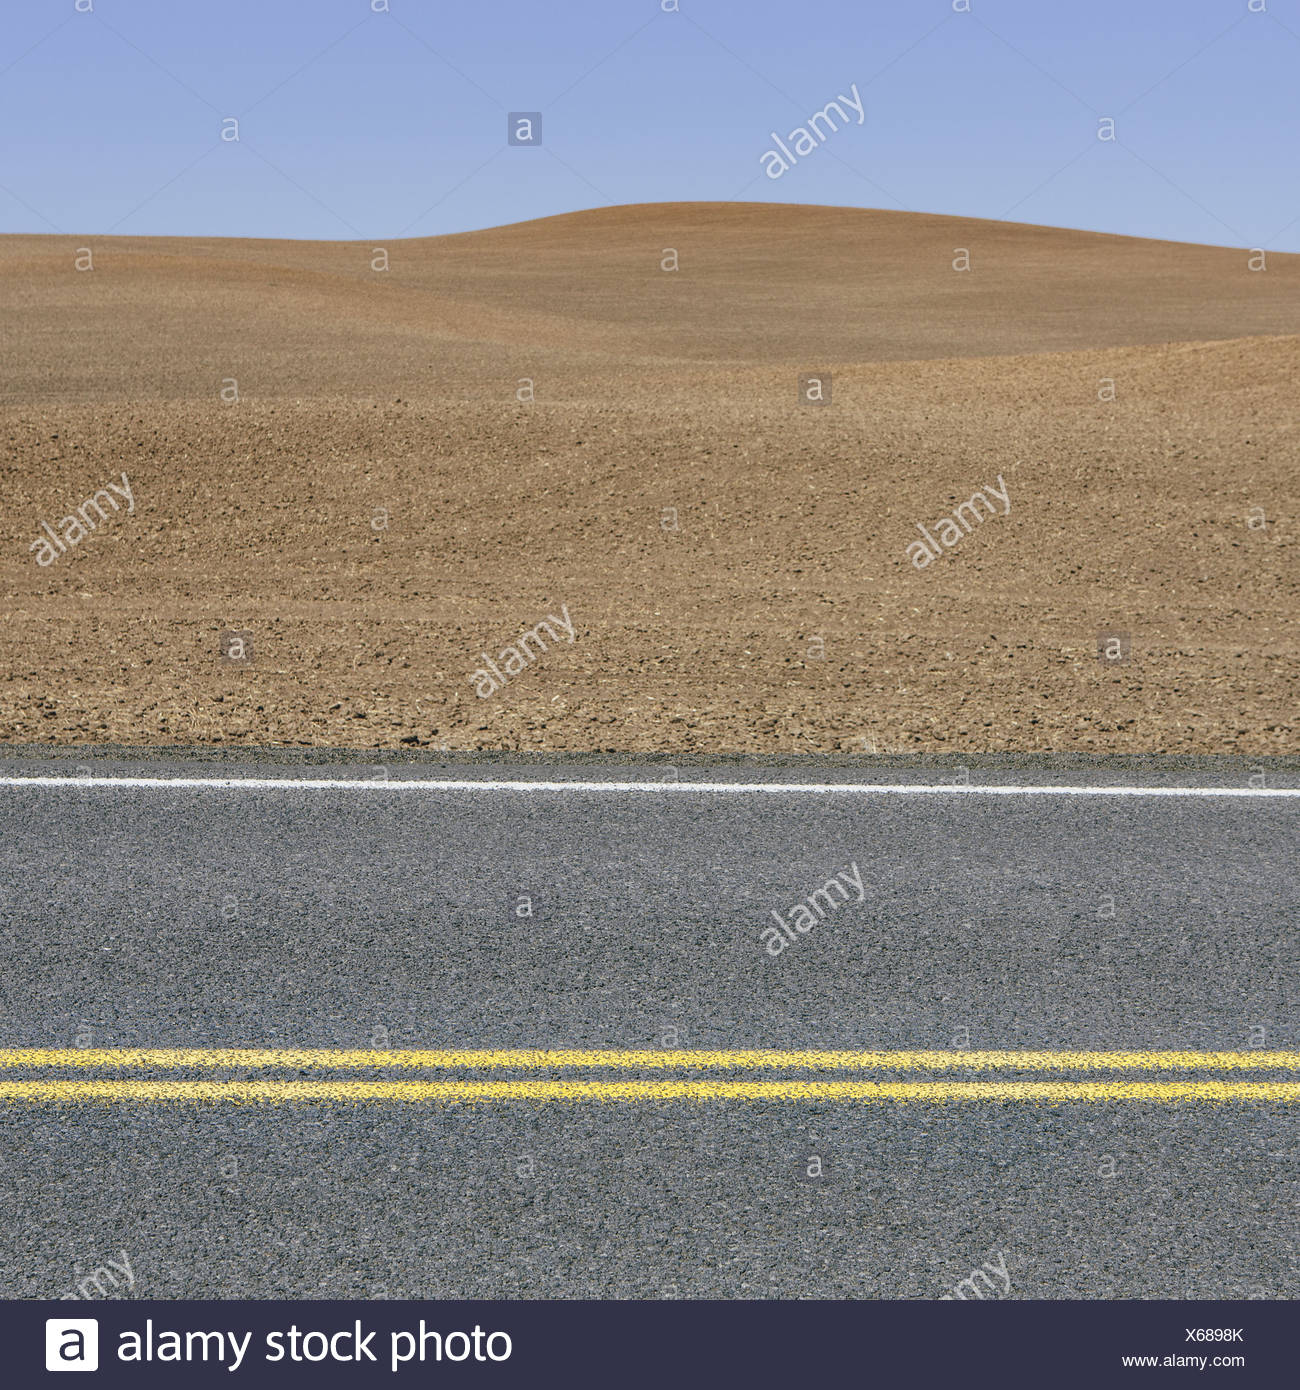 A road through the farming landscape of ploughed fields and farmland near Pullman, Washington state. Stock Photo